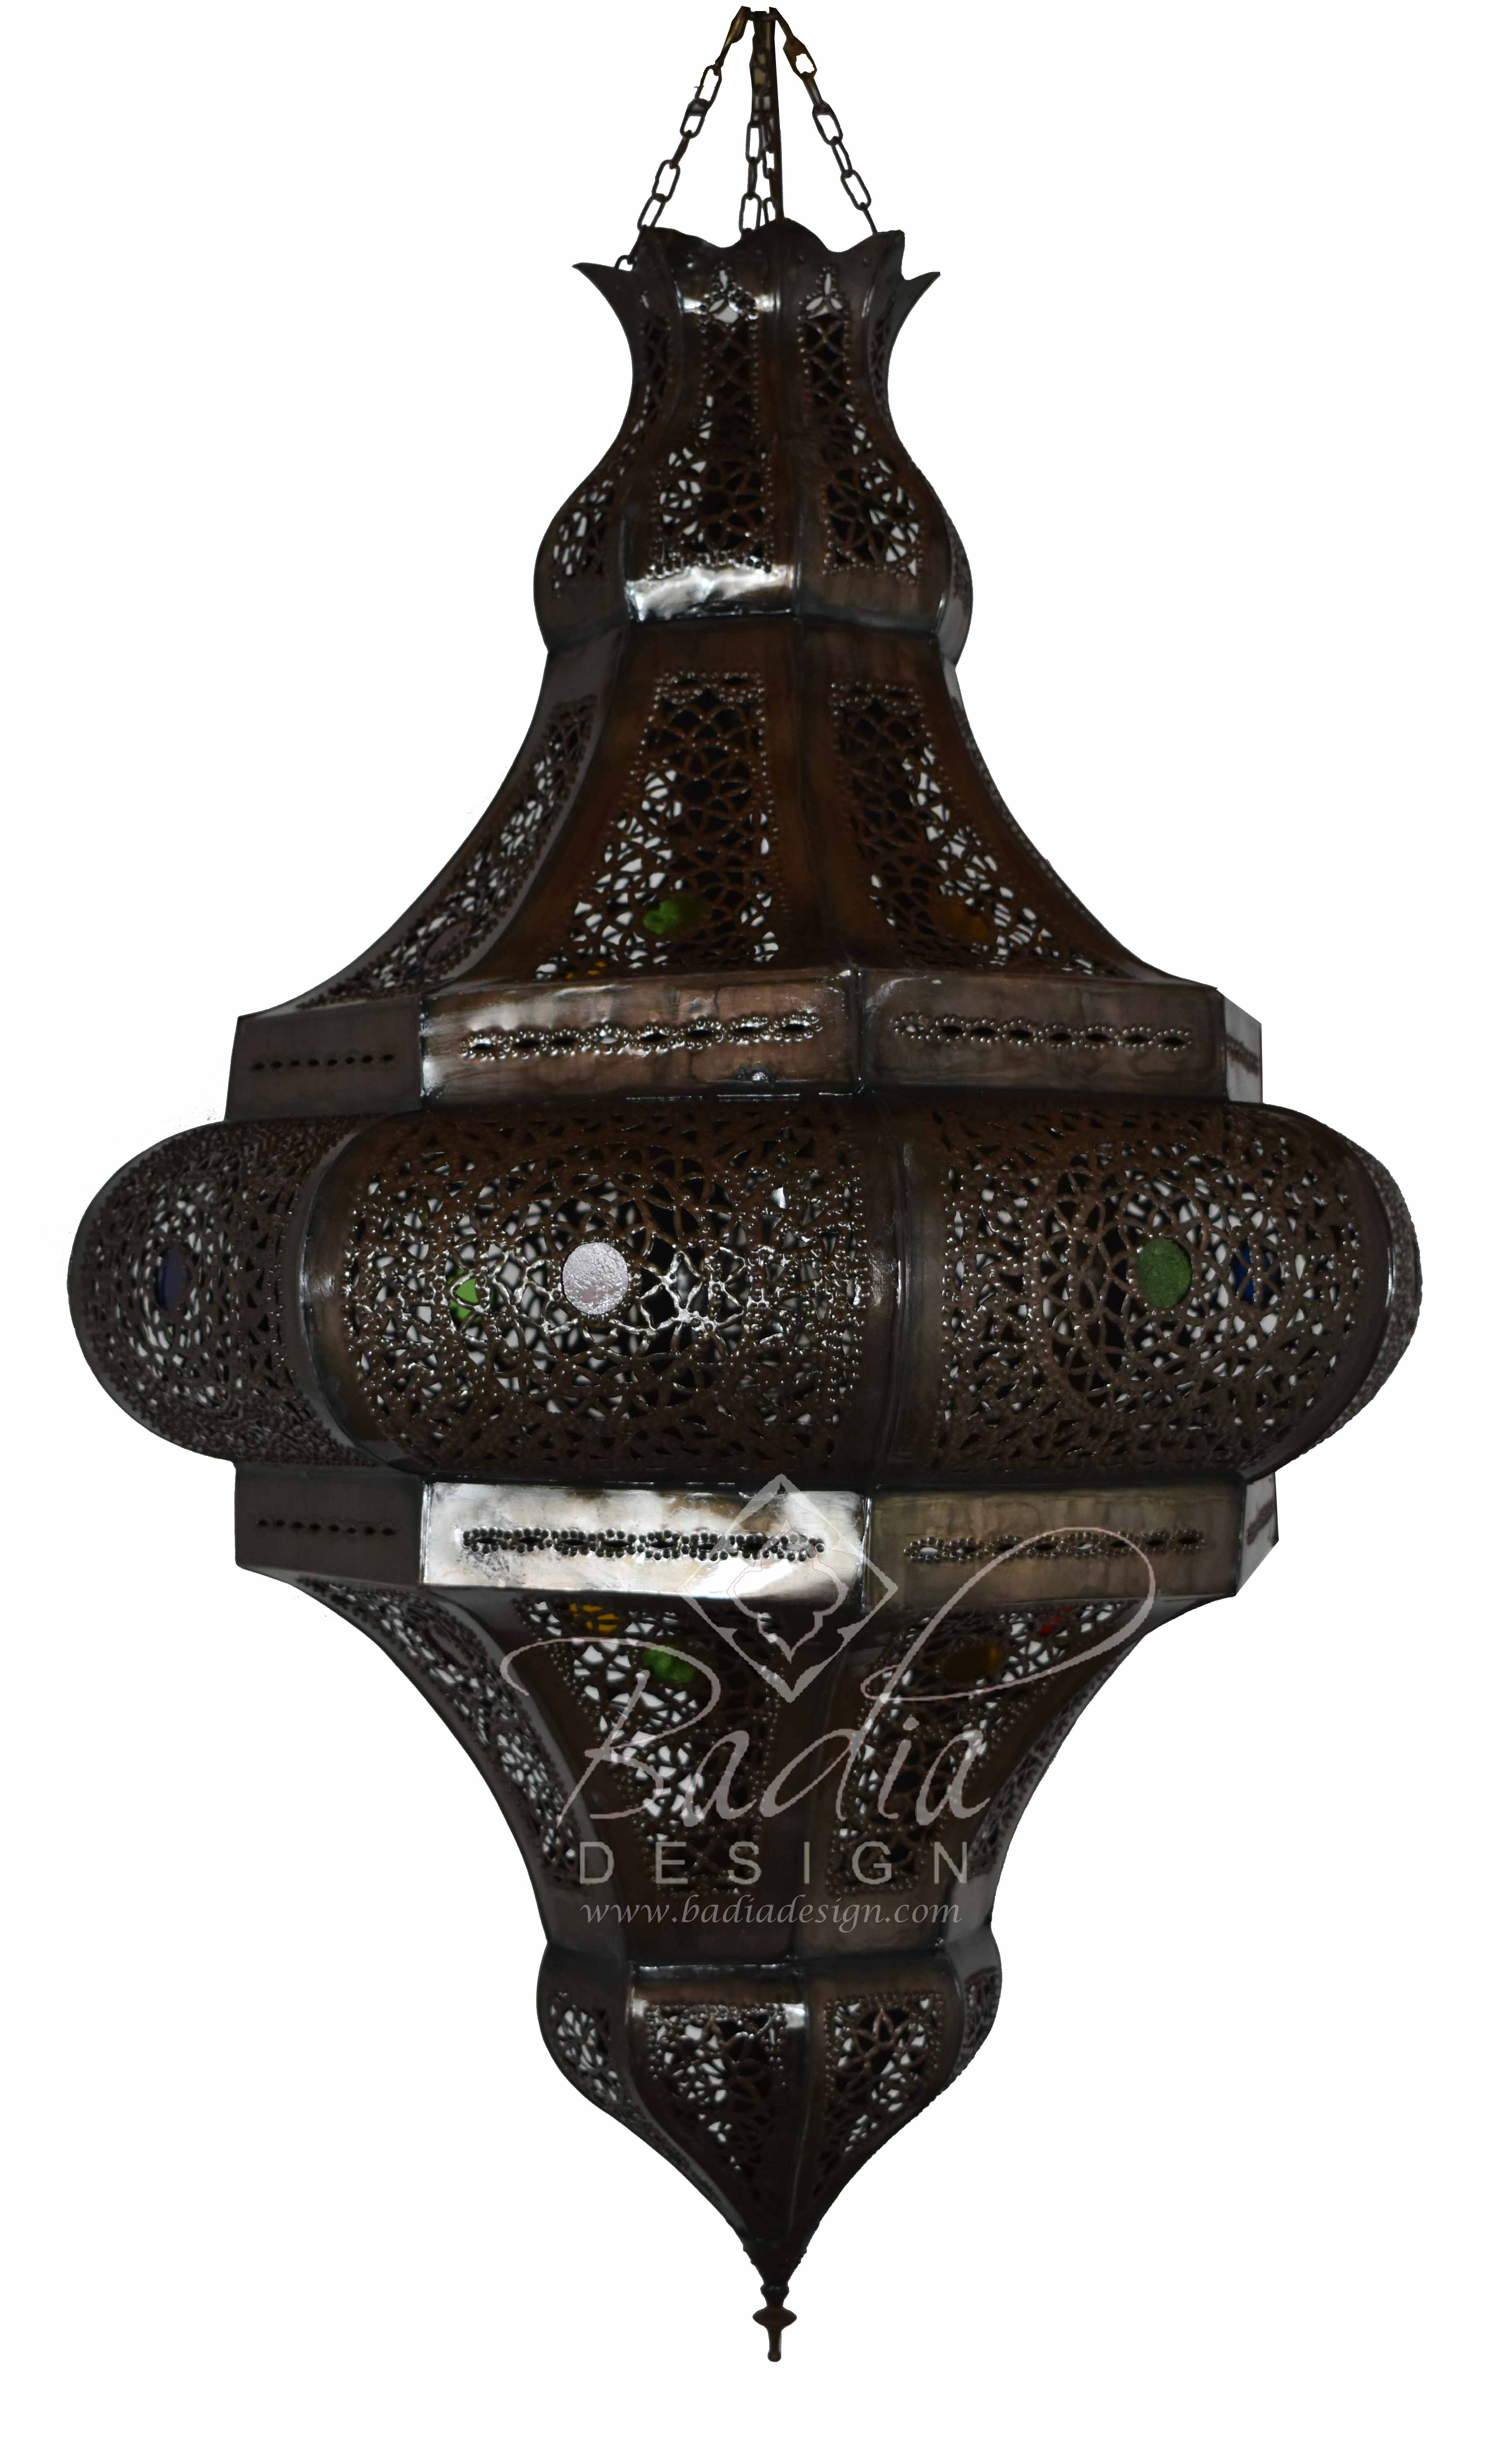 large-moroccan-lantern-with-multi-color-glass-eyelets-lig407-1.jpg